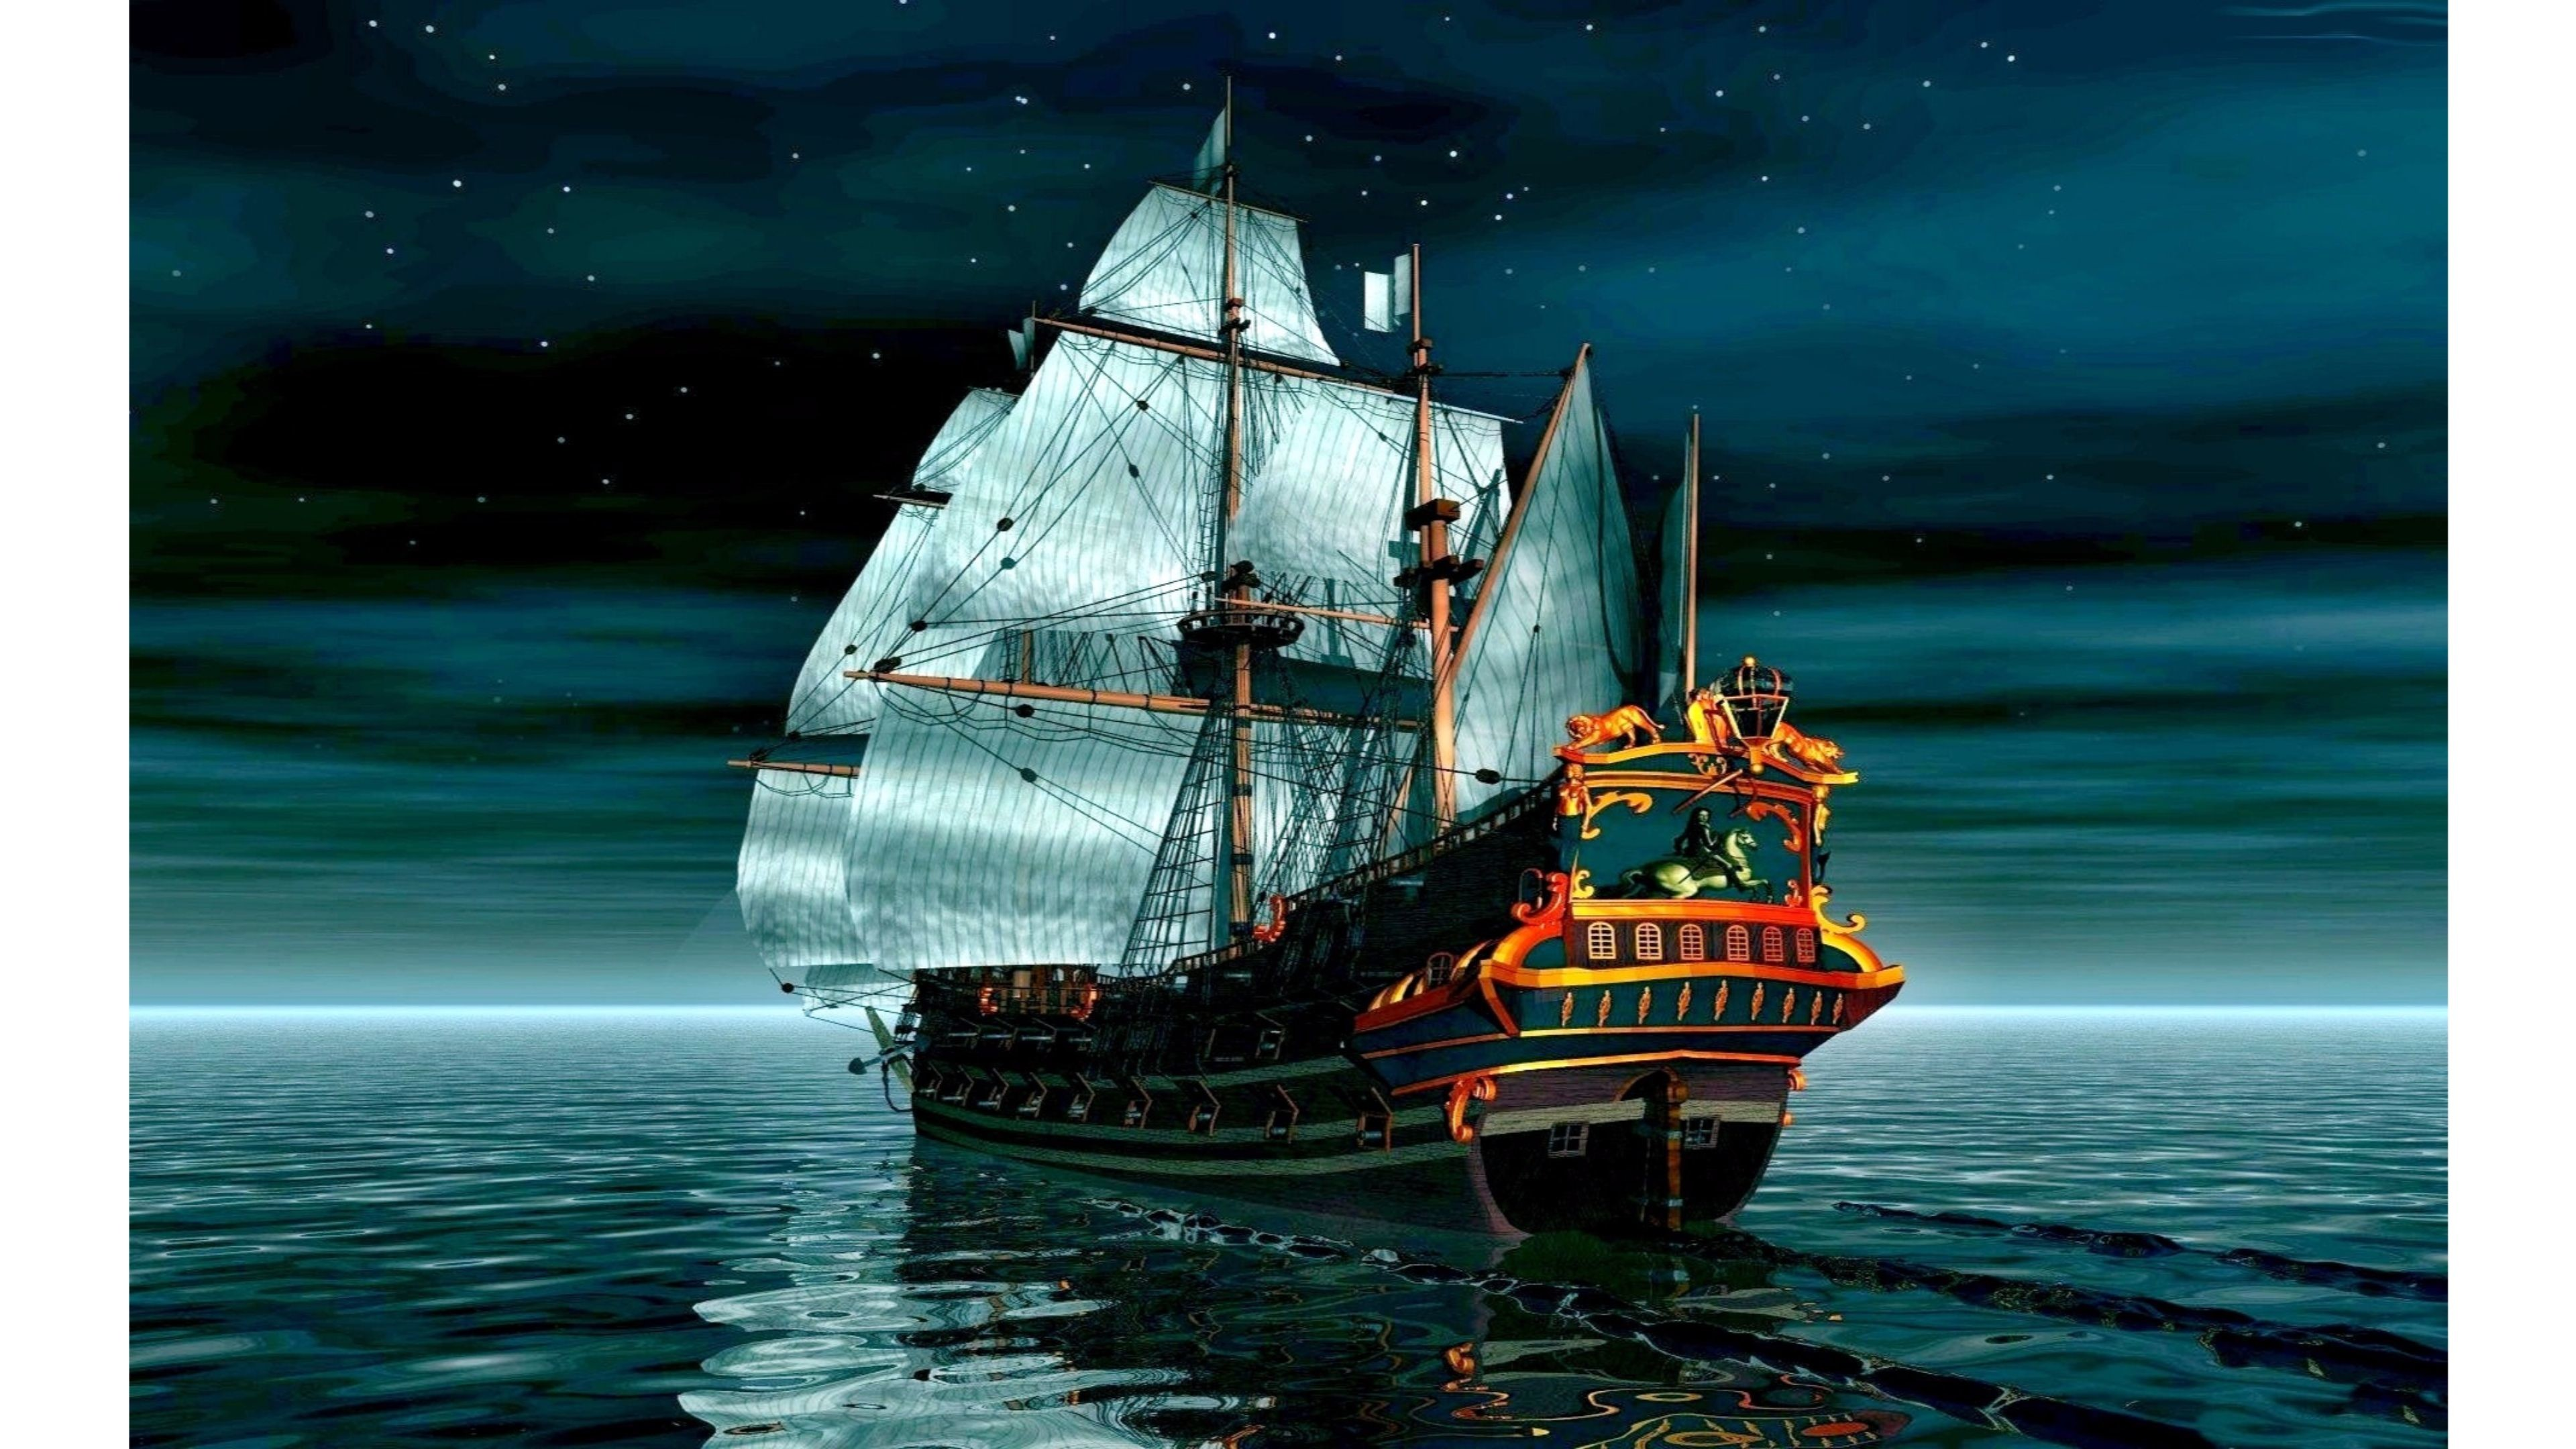 3840x2160 Pirate ship closing to the shore wallpaper Fantasy wallpapers